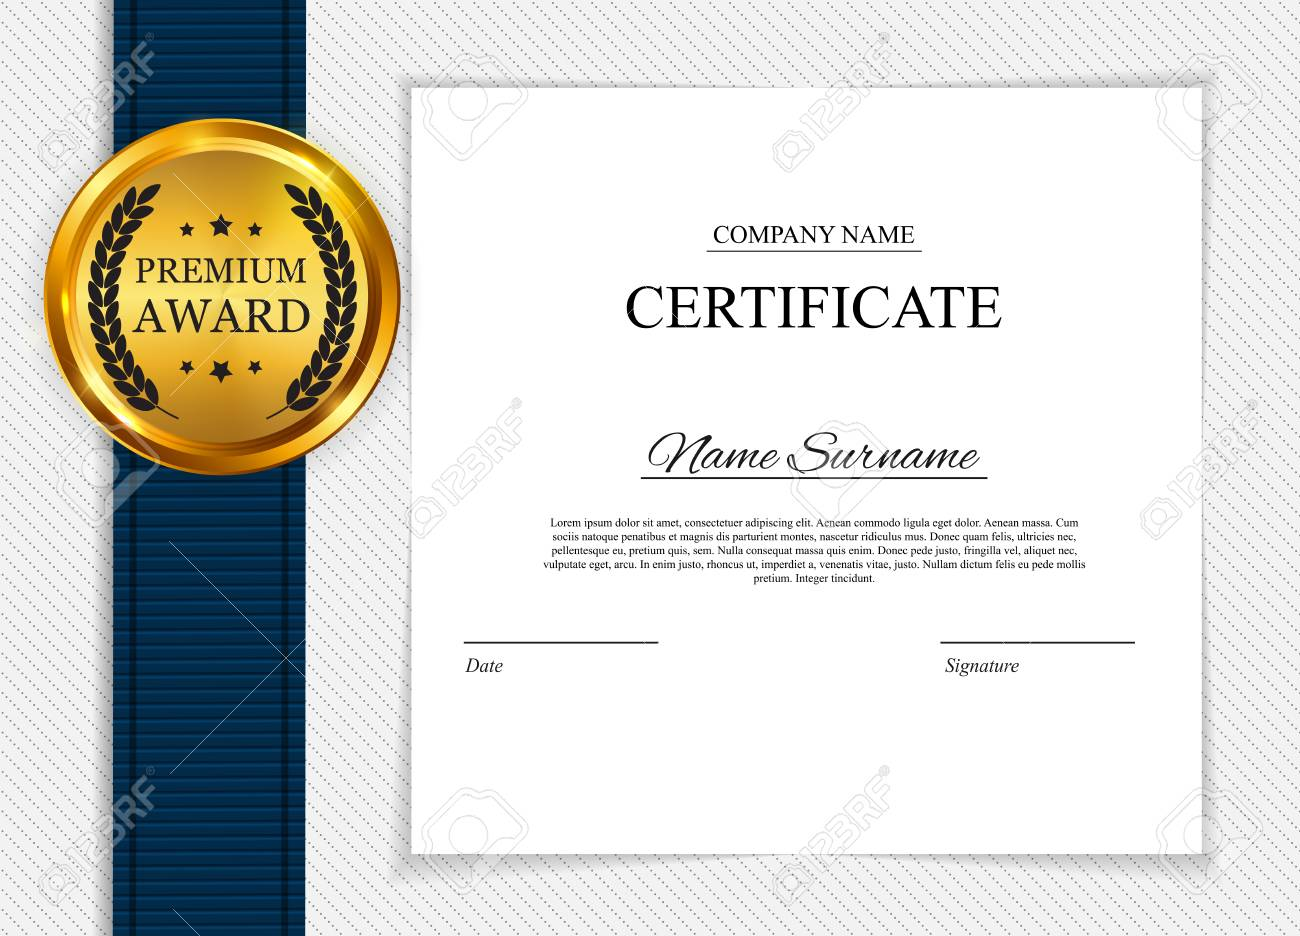 Blank Certificate Design from previews.123rf.com